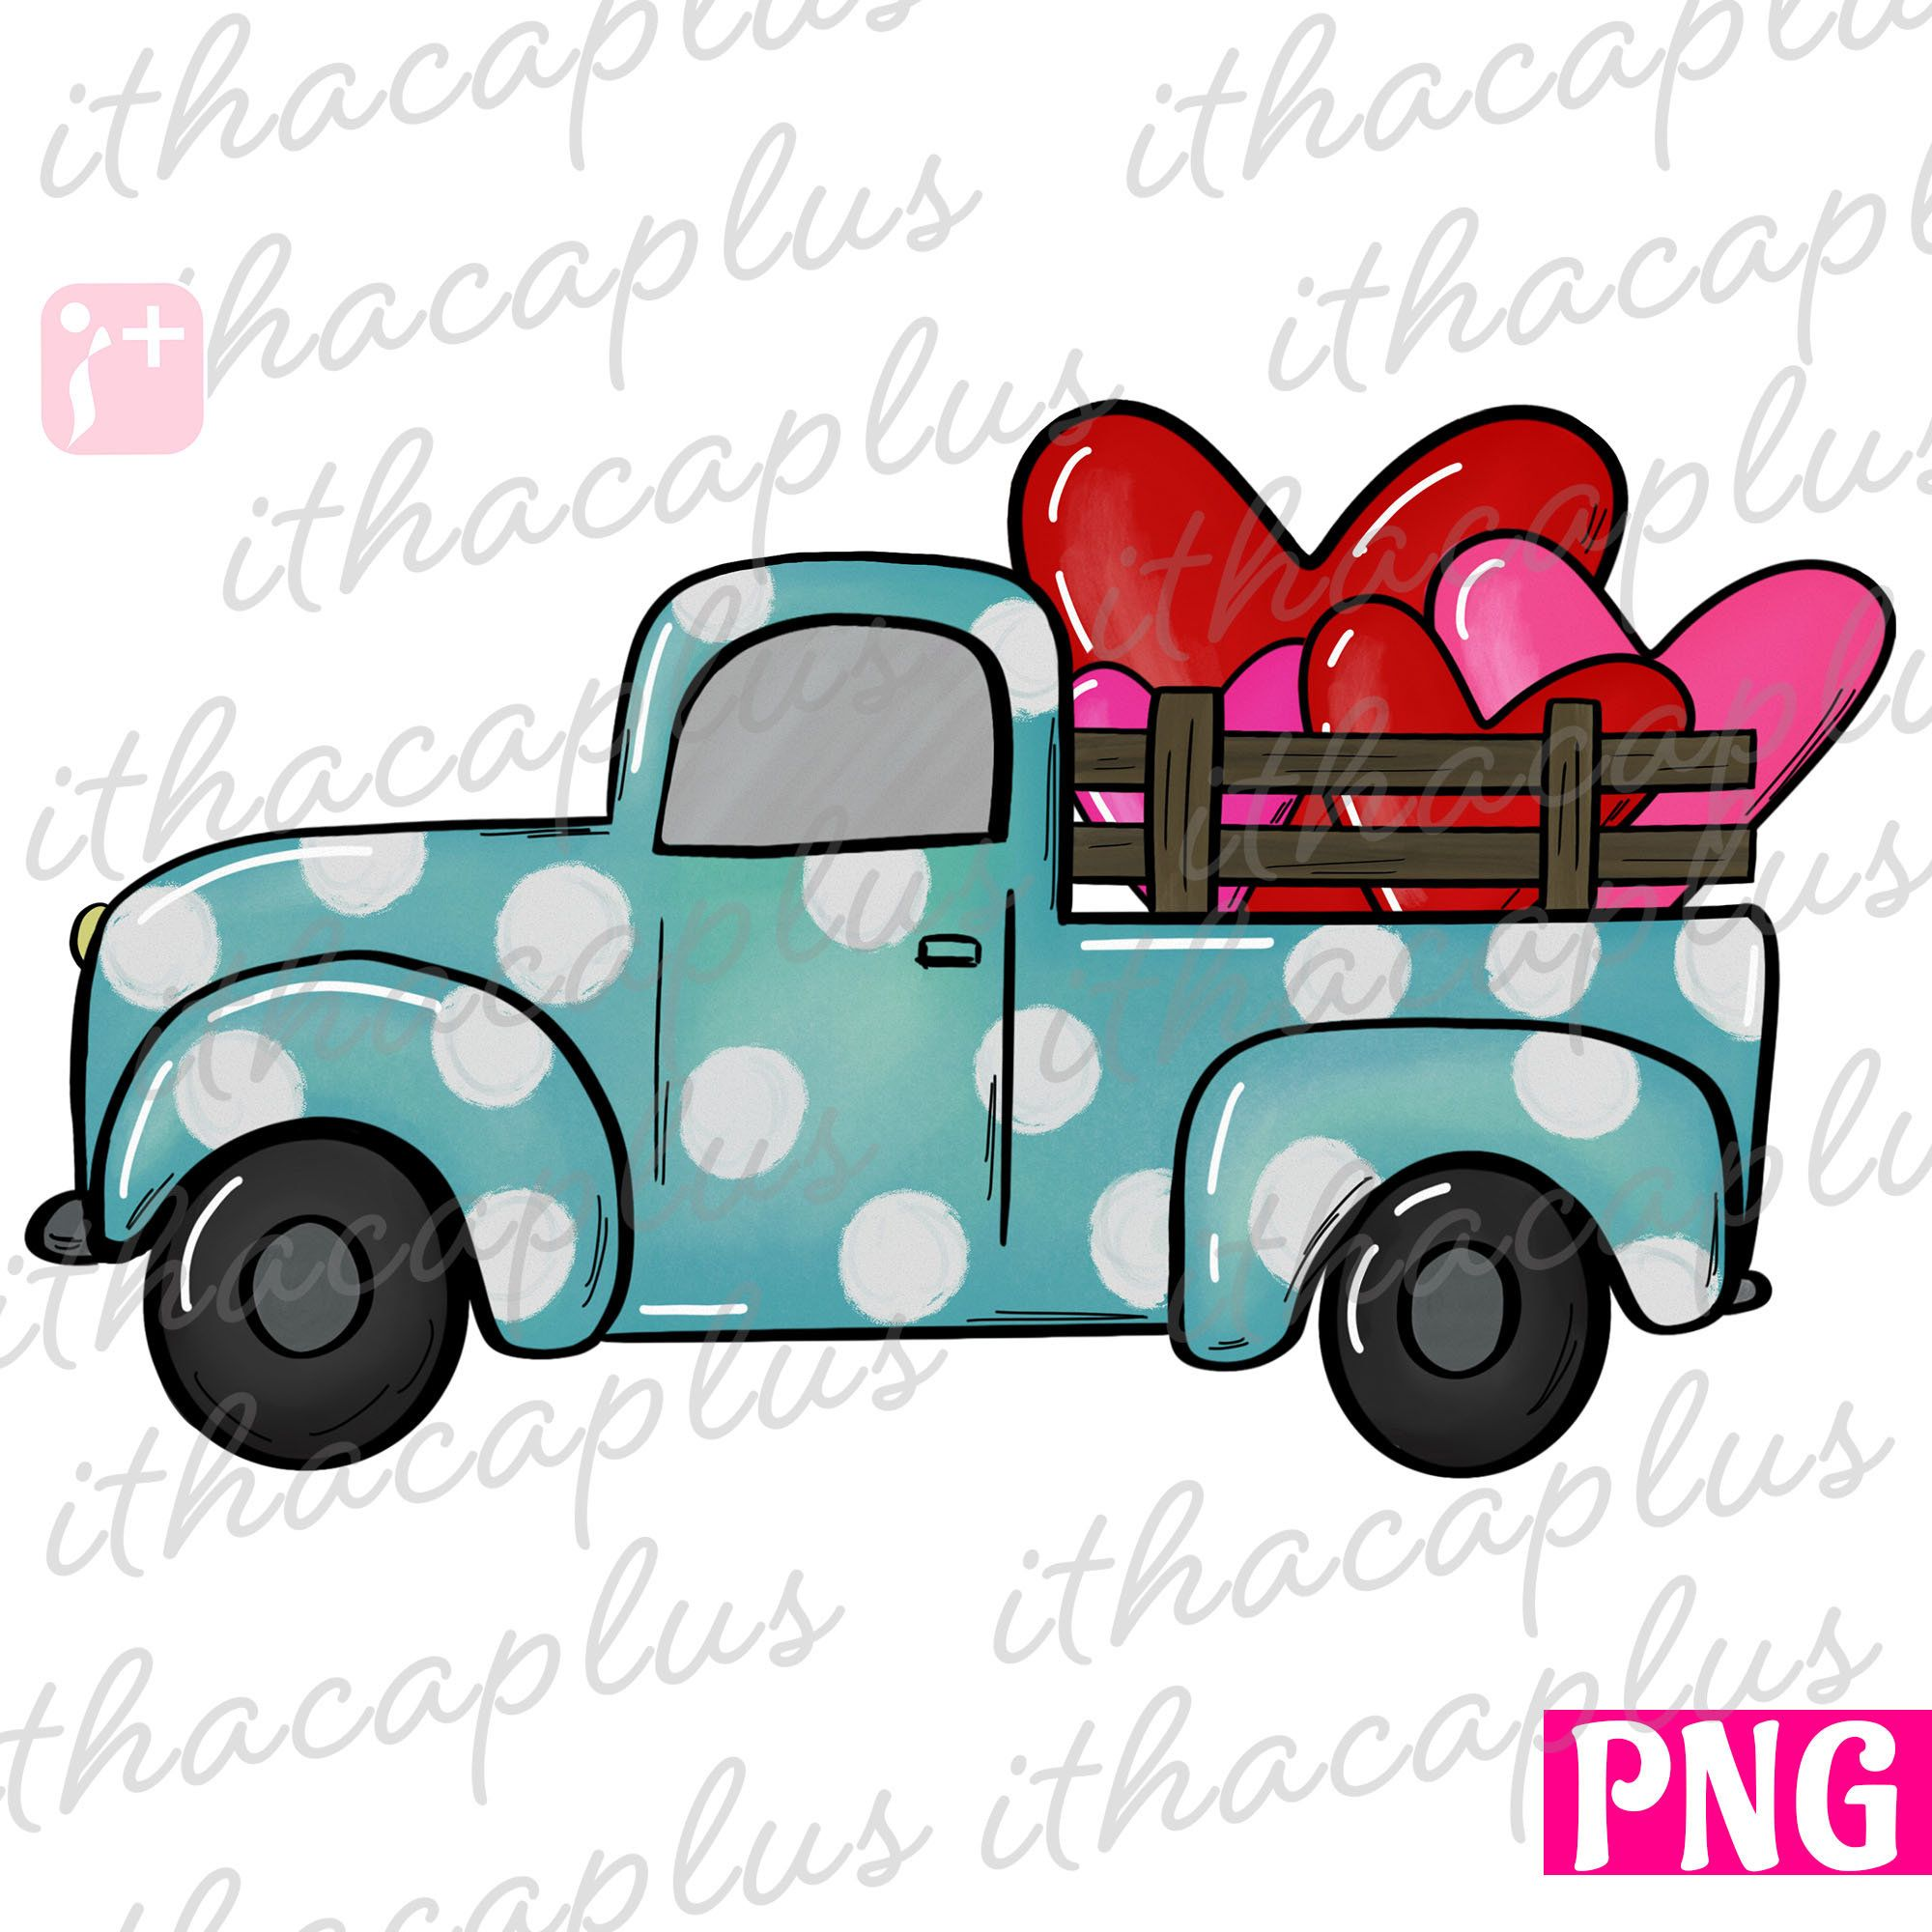 Valentines Day Sublimation Valentine Truck Png Vintage Truck Etsy In 2021 Valentines Day Drawing Valentines Art Vintage Truck